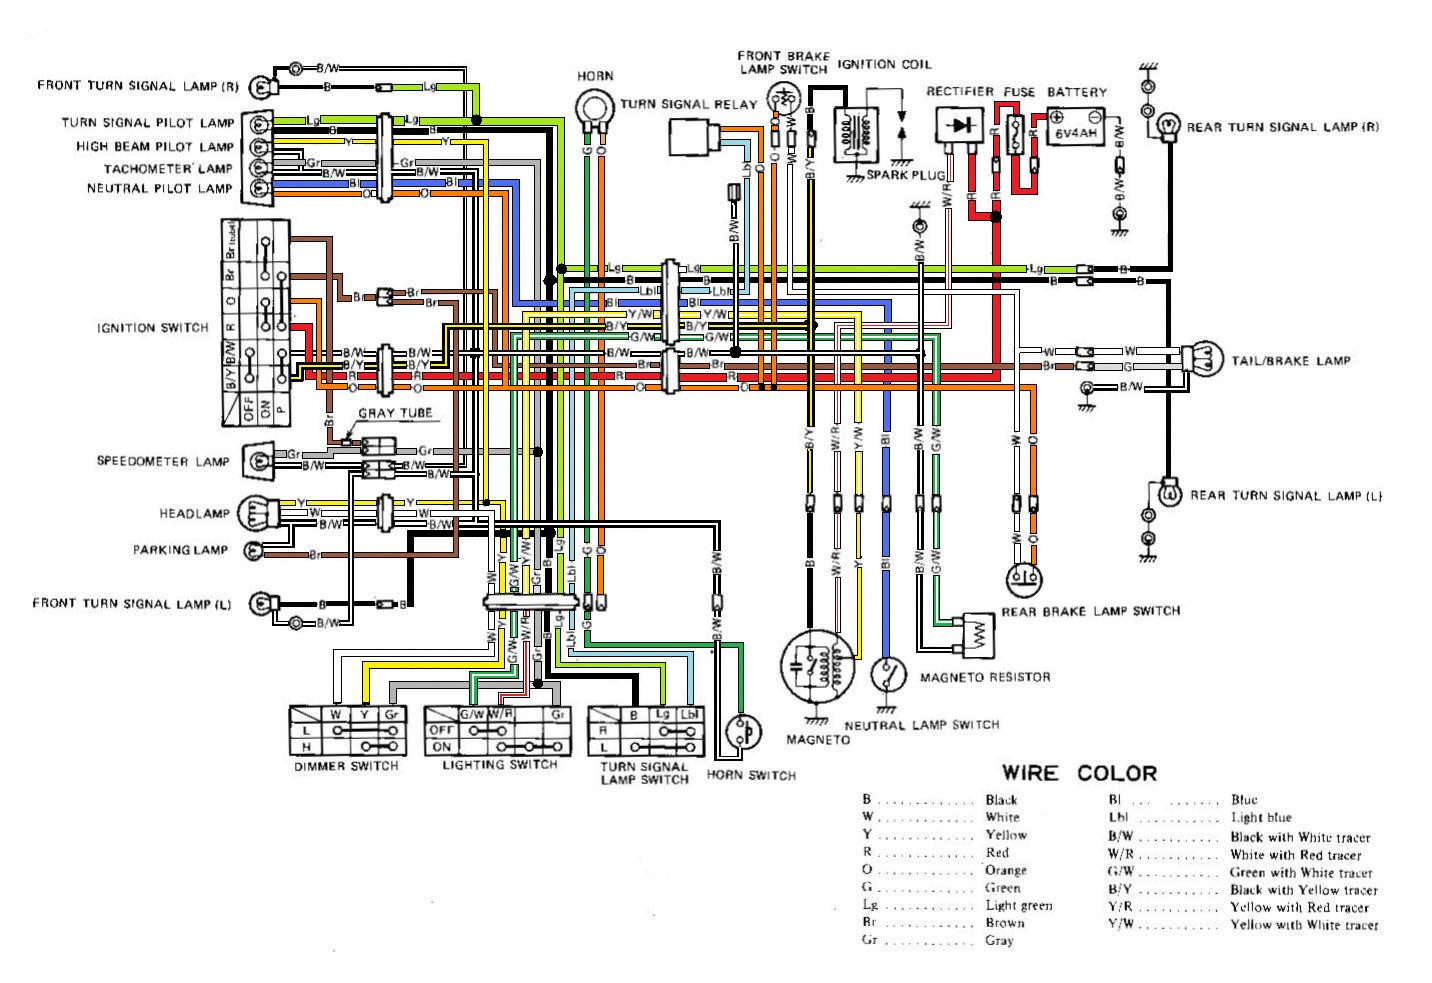 hight resolution of suzuki ts250 wiring diagram wiring diagram schematics suzuki gsxr 750 wiring diagram suzuki gt380 wiring diagram